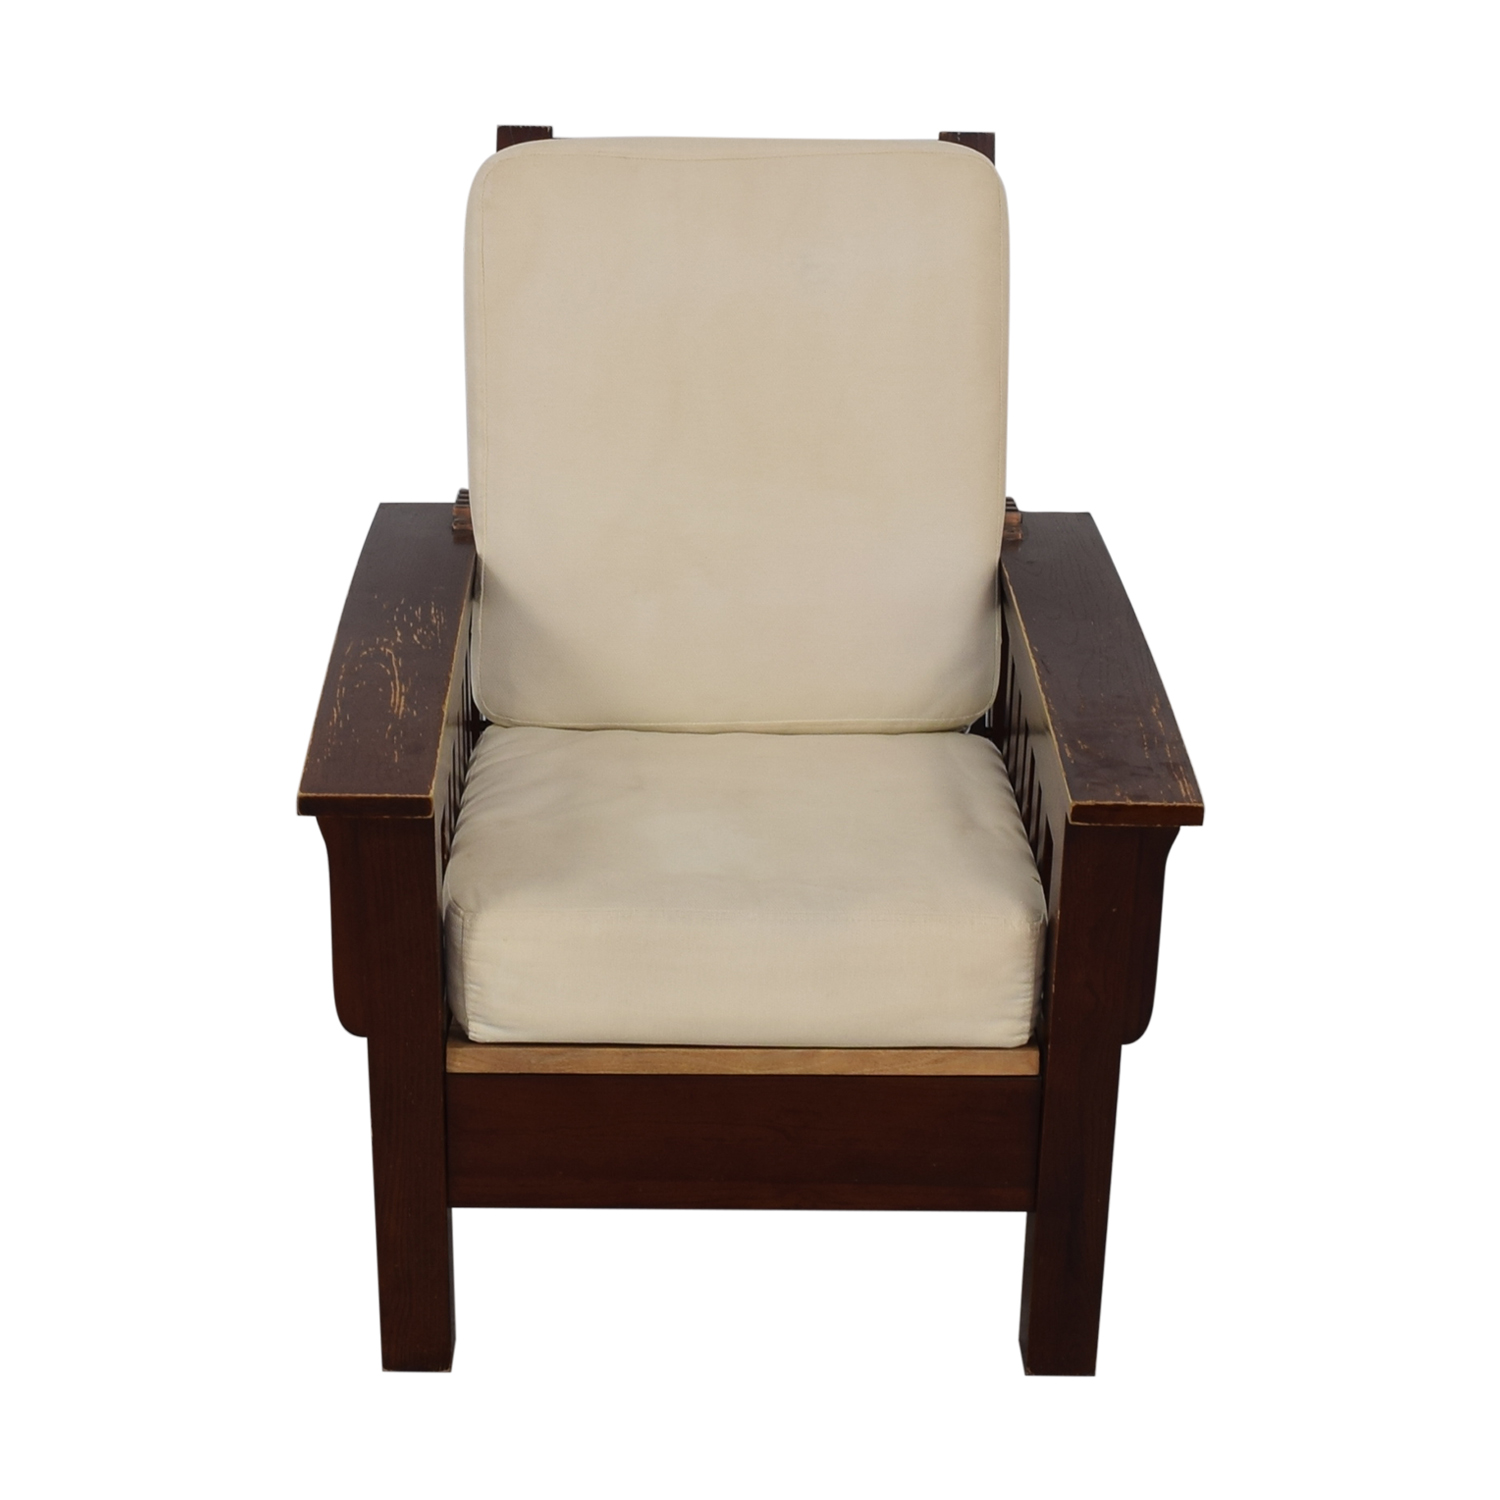 Dark Wood Recliner Chair for sale